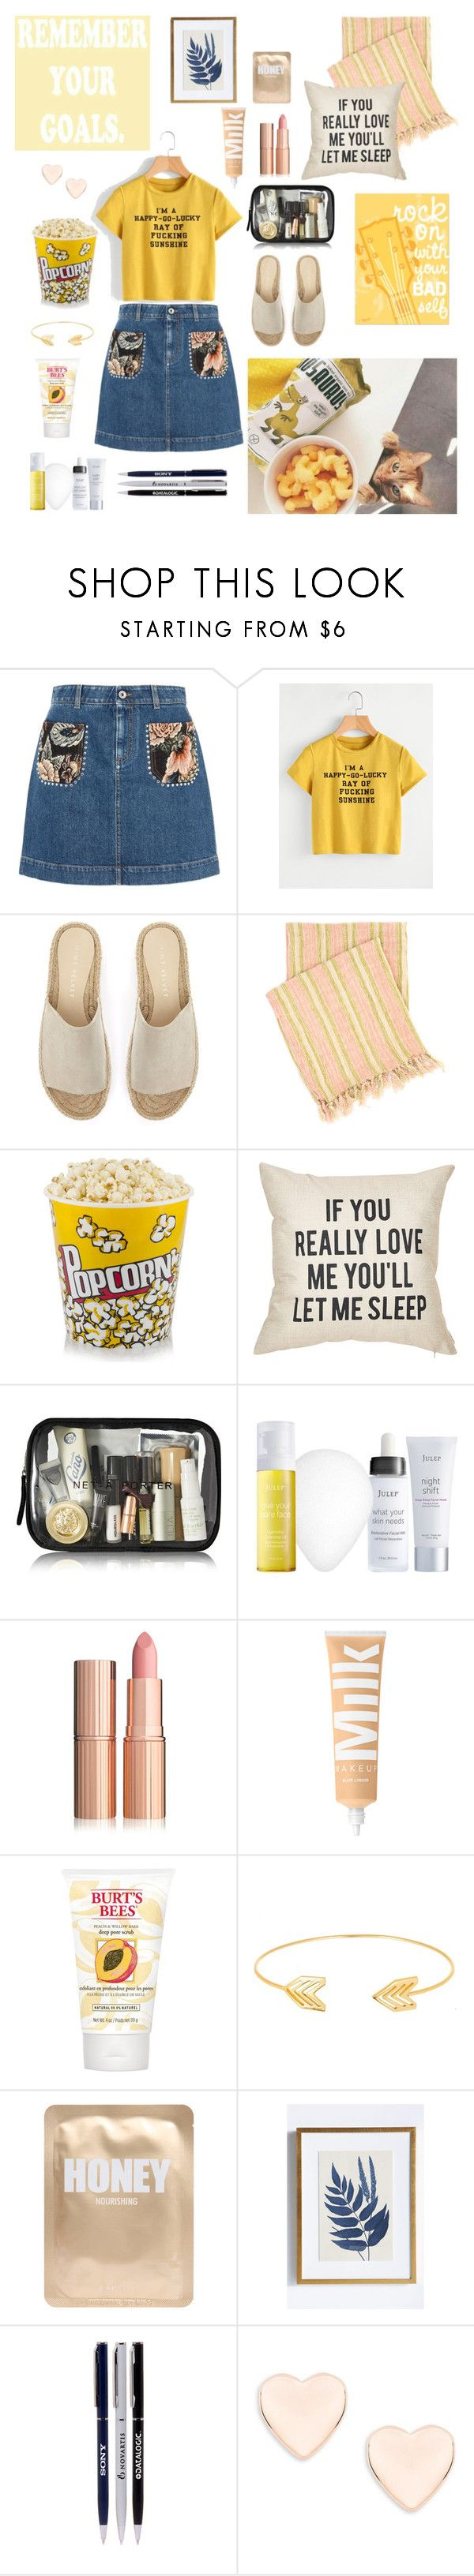 """Untitled #18"" by zarmon ❤ liked on Polyvore featuring beauty, STELLA McCARTNEY, Mint Velvet, Pine Cone Hill, Julep, John Lewis, Lord & Taylor, Lapcos, Anthropologie and Ted Baker"